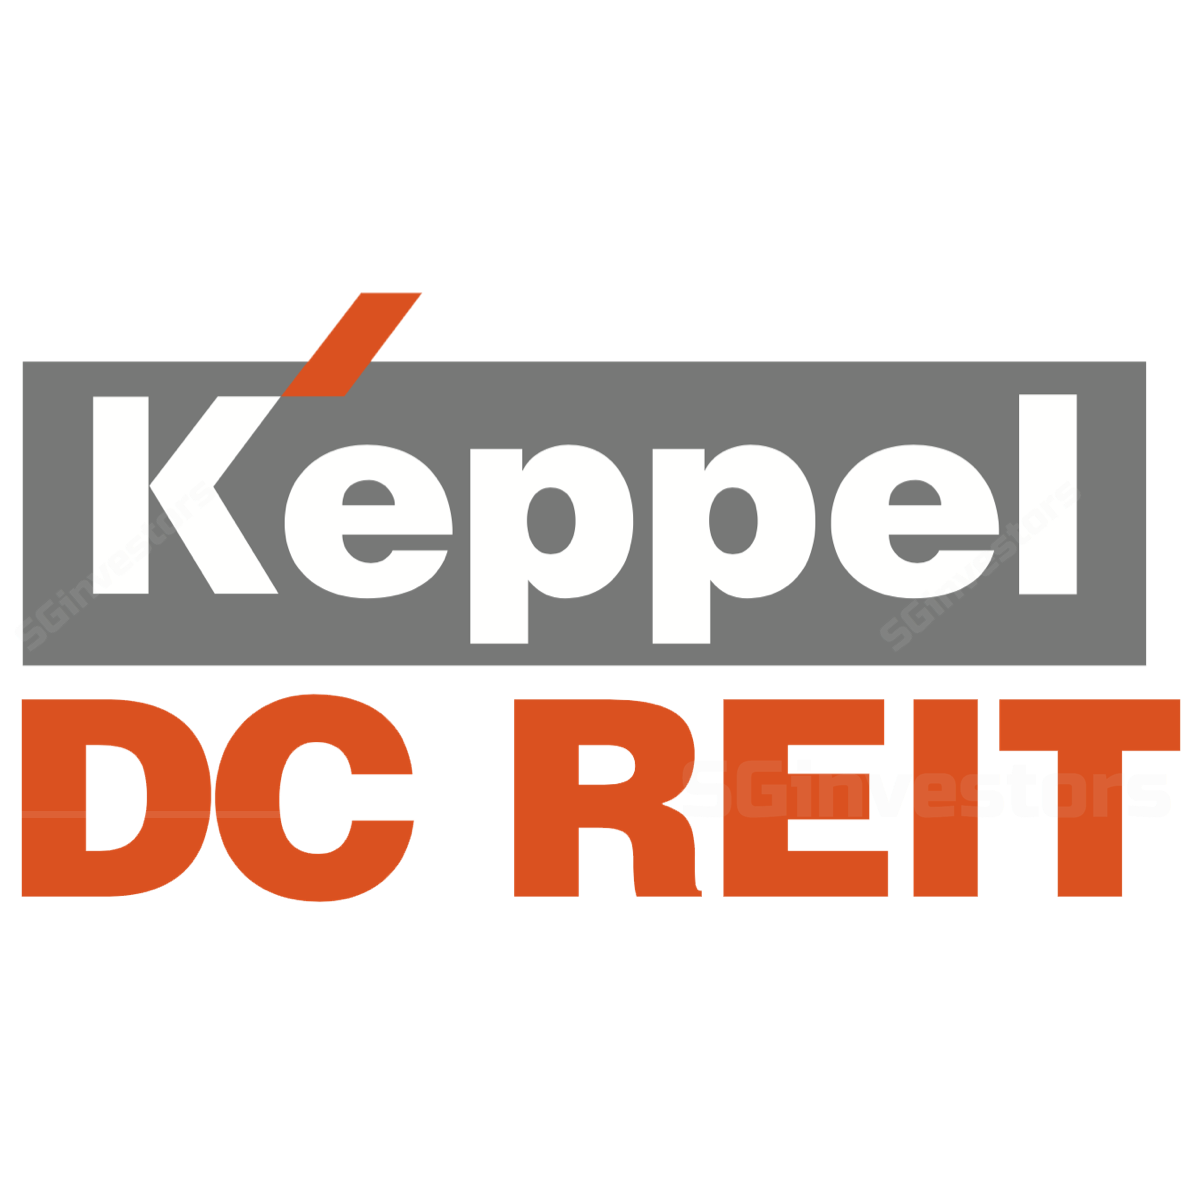 Keppel DC REIT - OCBC Investment 2018-04-17: Unexciting Valuations